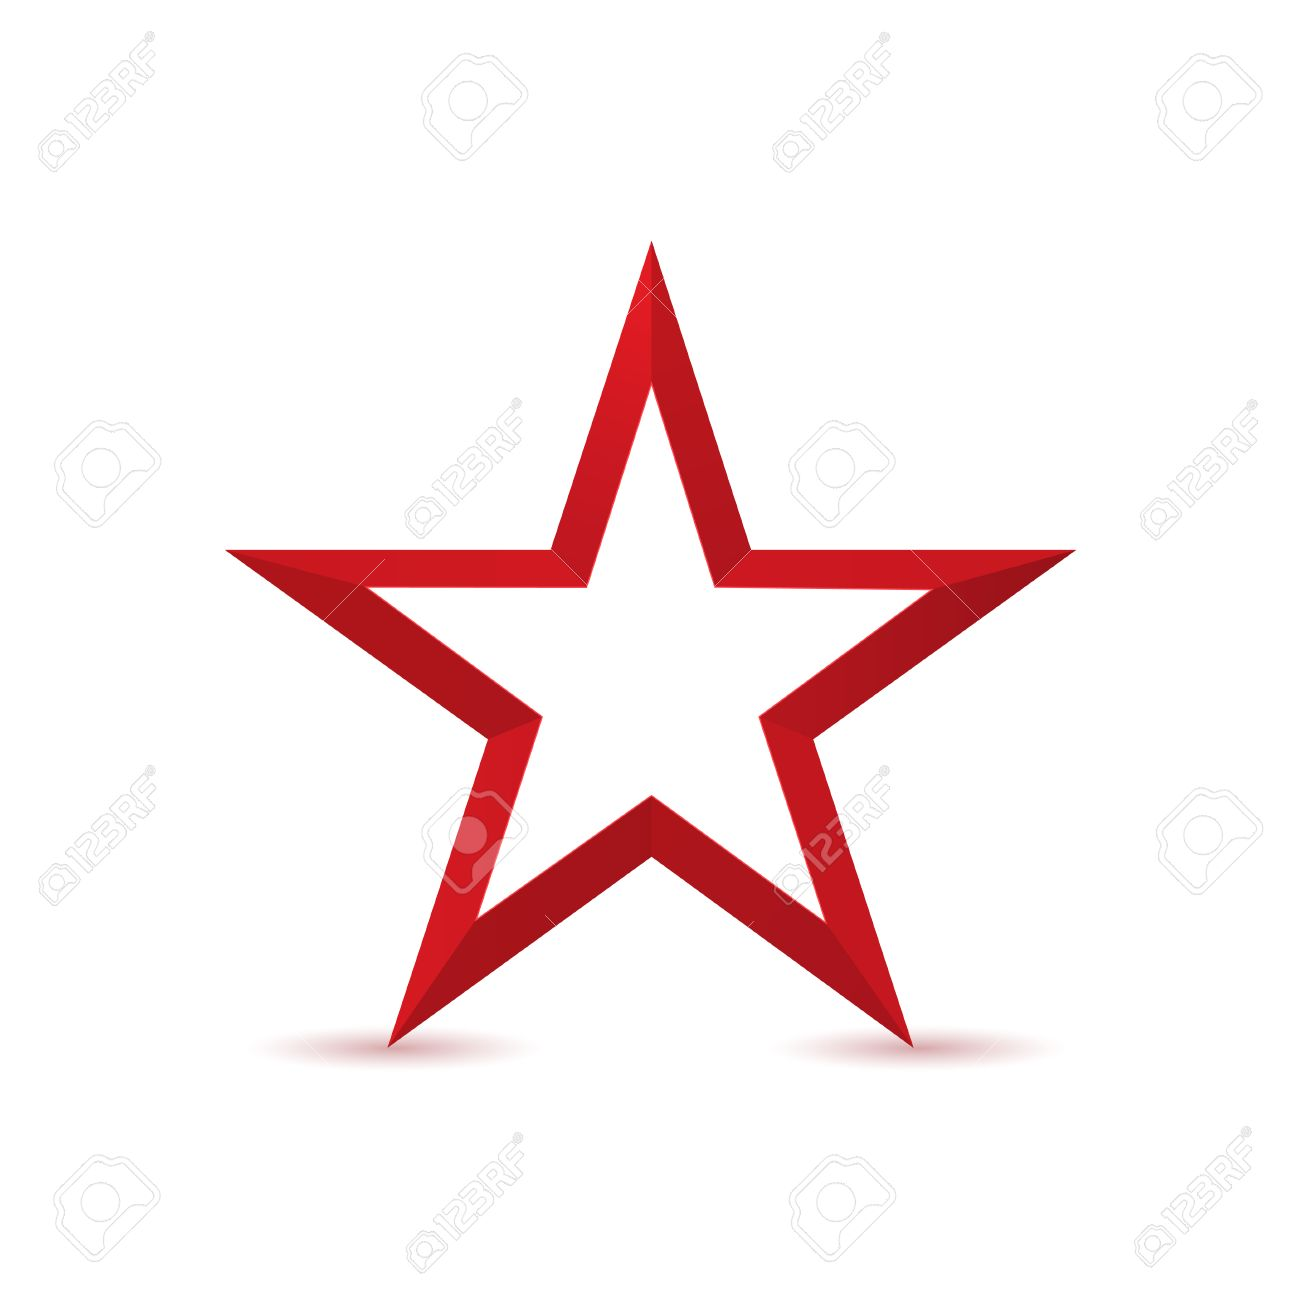 Red star logo icon isolated on white background success award red star logo icon isolated on white background success award or communism symbol stock biocorpaavc